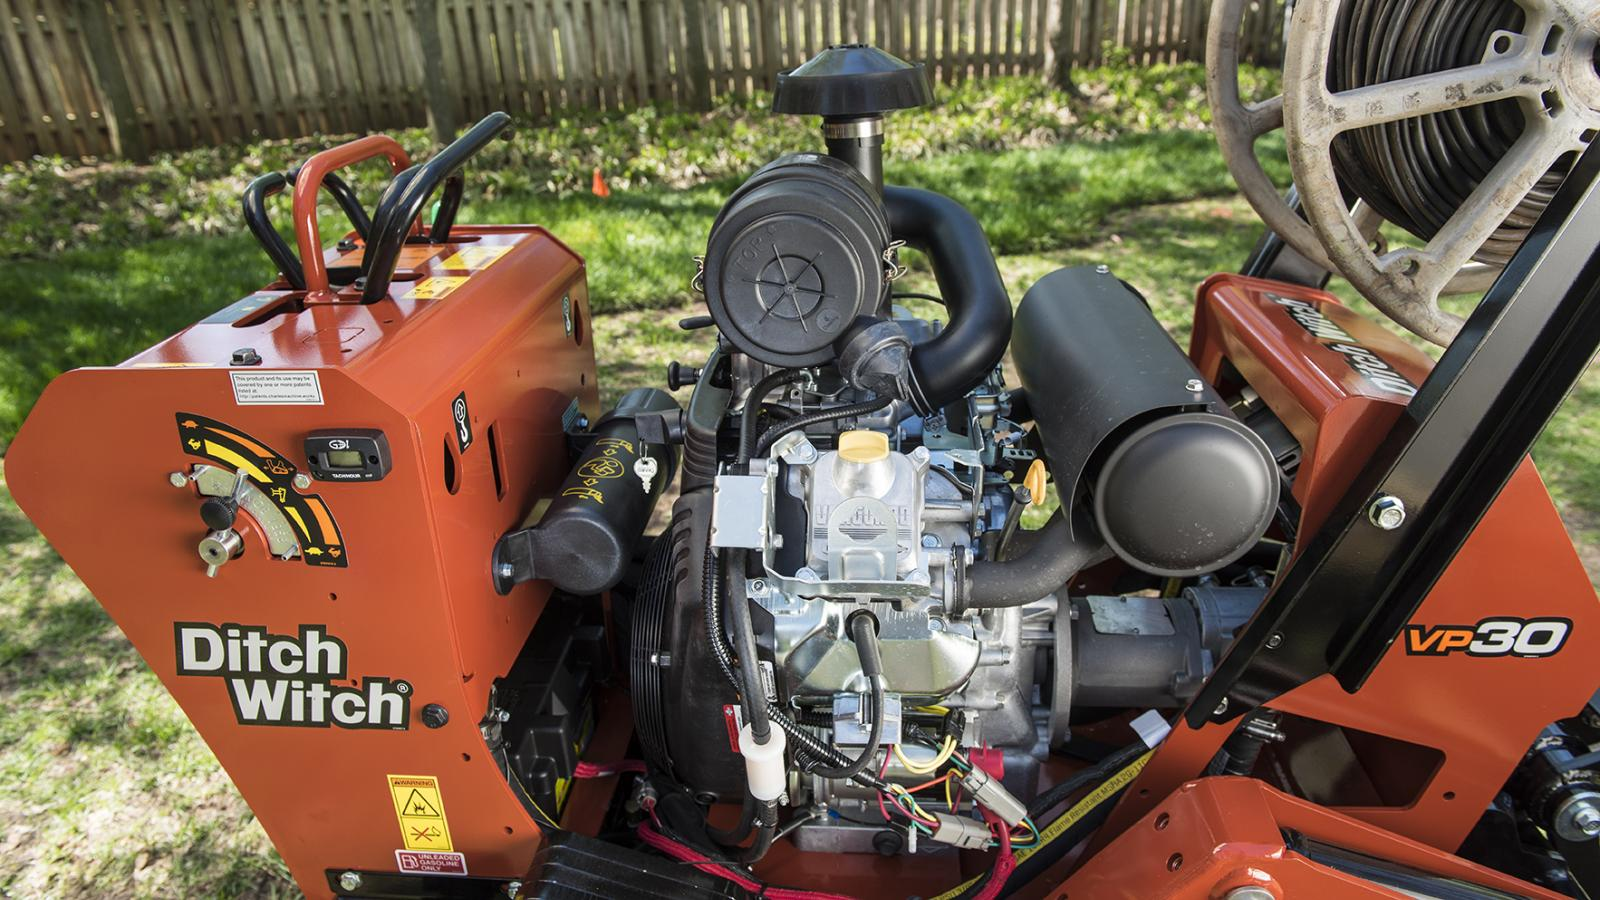 Ditch Witch VP30 Vibratory Plow